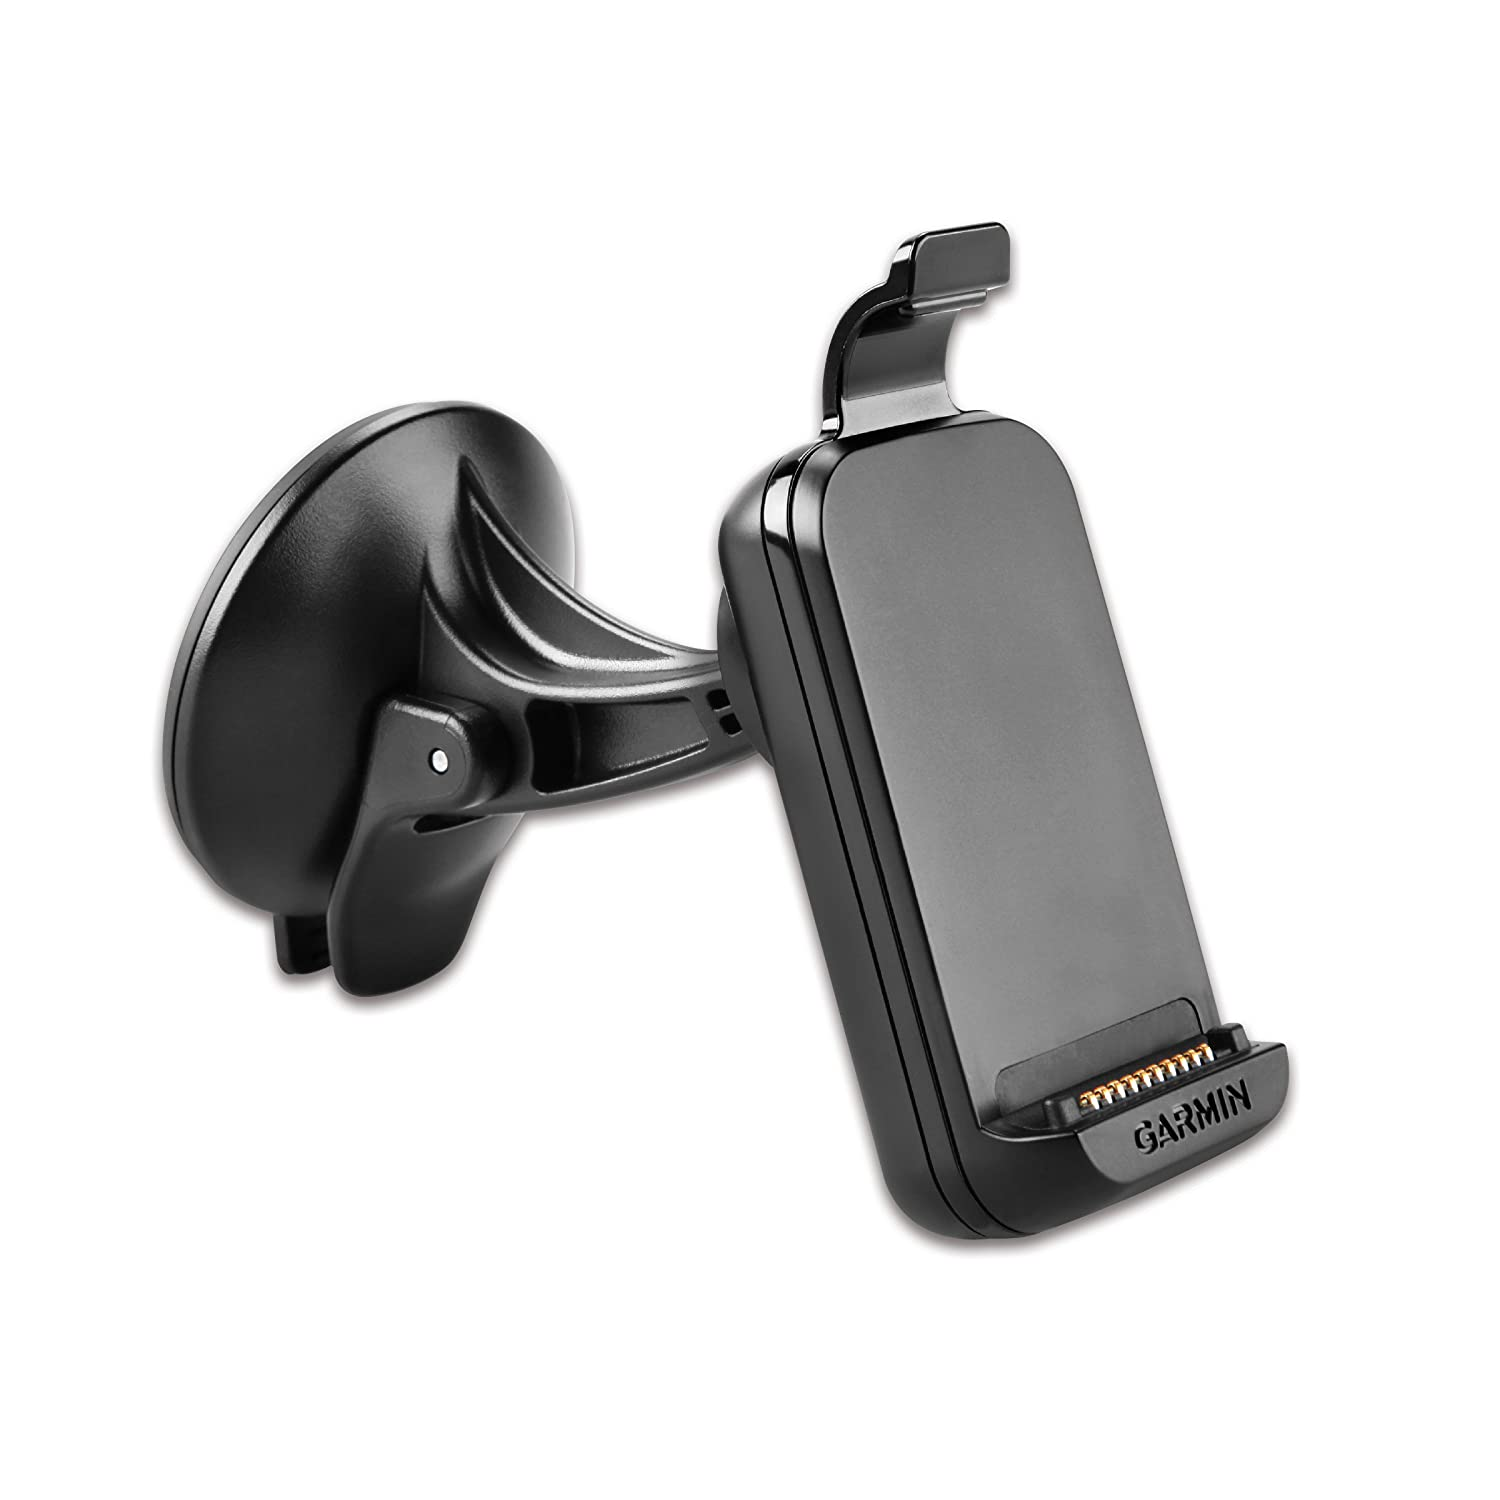 Garmin 010-11478-00 Powered Suction Cup Mount with Speaker